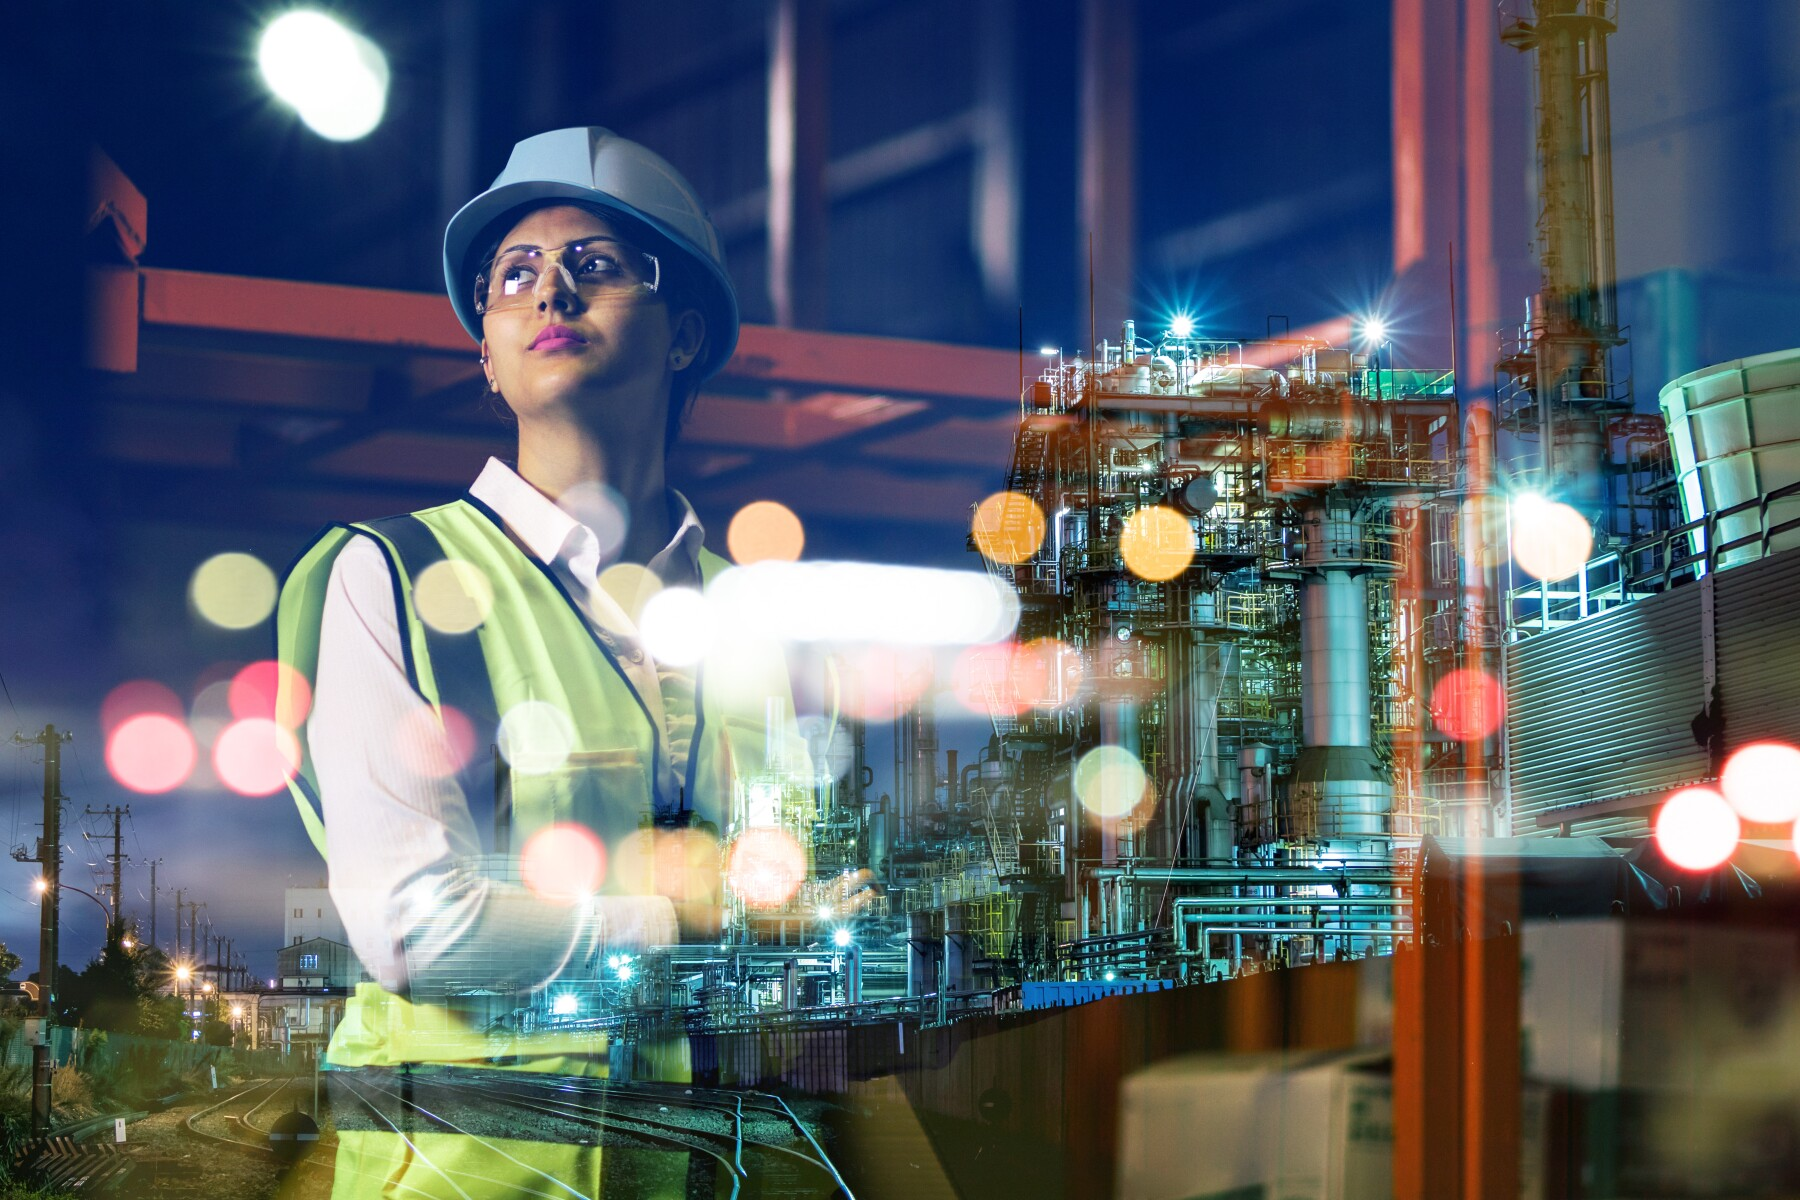 double exposure of woman labor and factory exterior. industrial technology concept.